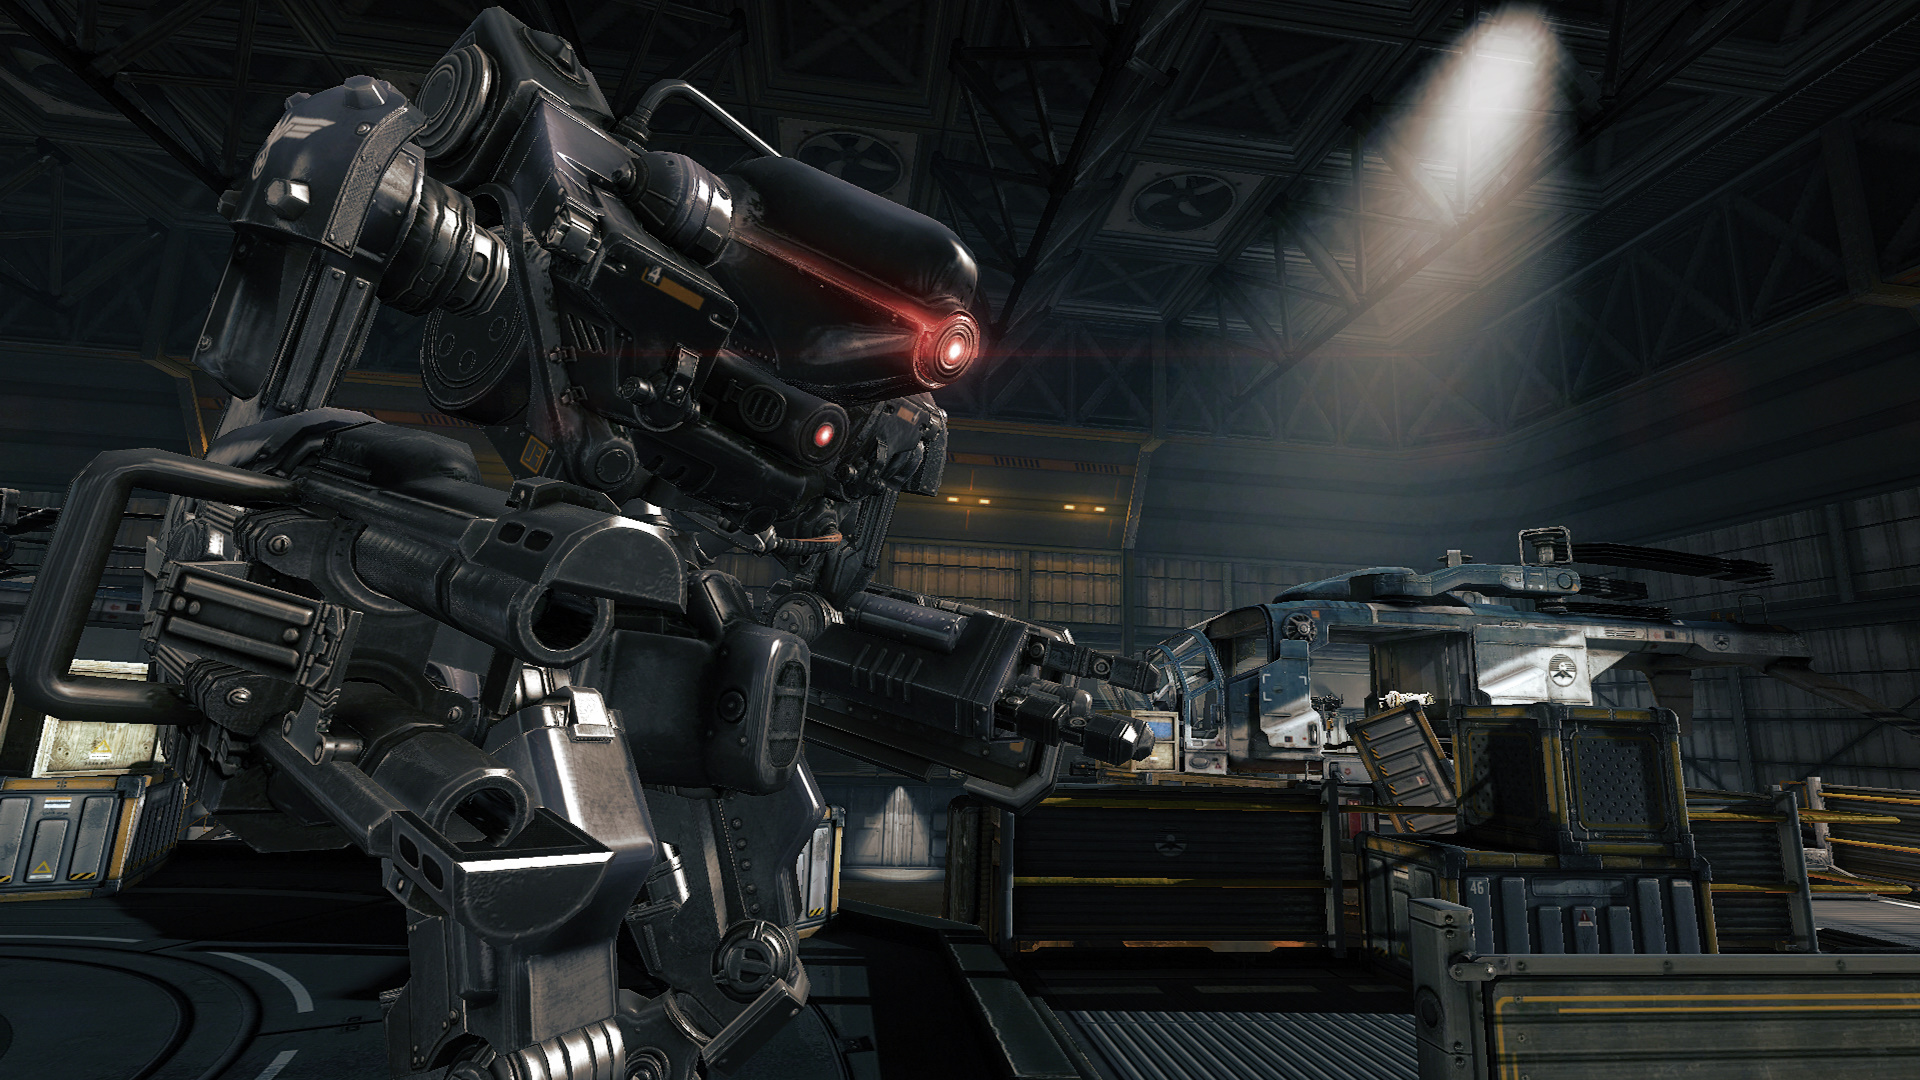 WolfNewOrder_x64 2017-08-08 21-29-14-512.jpg - Wolfenstein: The New Order W.TNO